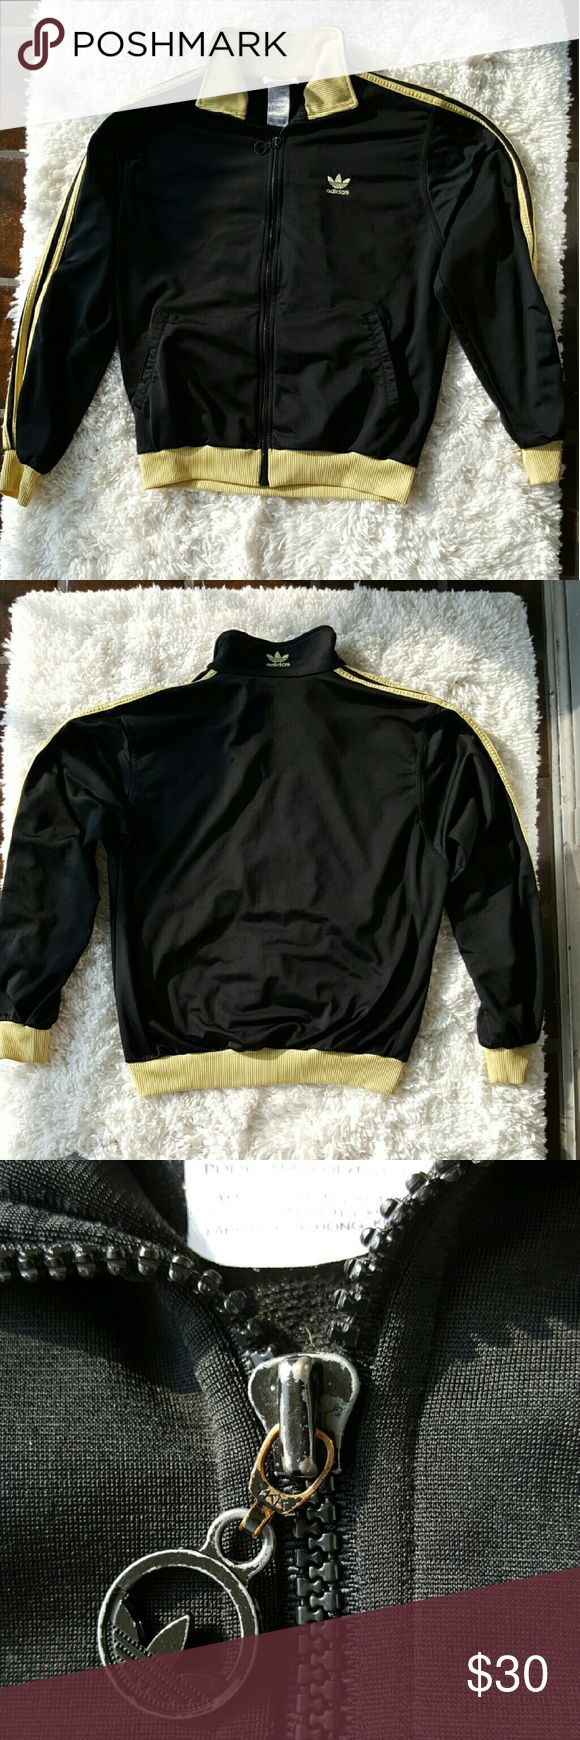 "Adidas Men's Black and Yellow Zip Up Jacket Small Zip up black collared jacket from ADIDAS. Light yellow accents, stripes and logo embroidered. Preloved, worn and washed. The zipper pull is a little discolored otherwise jacket itself is flawless. Size Men's Small.  Approximate measurements laid flat- Pit to pit- 21"" Length- 24"" Sleeves- 23""  100% Polyester   #387 Adidas Jackets & Coats Lightweight & Shirt Jackets"